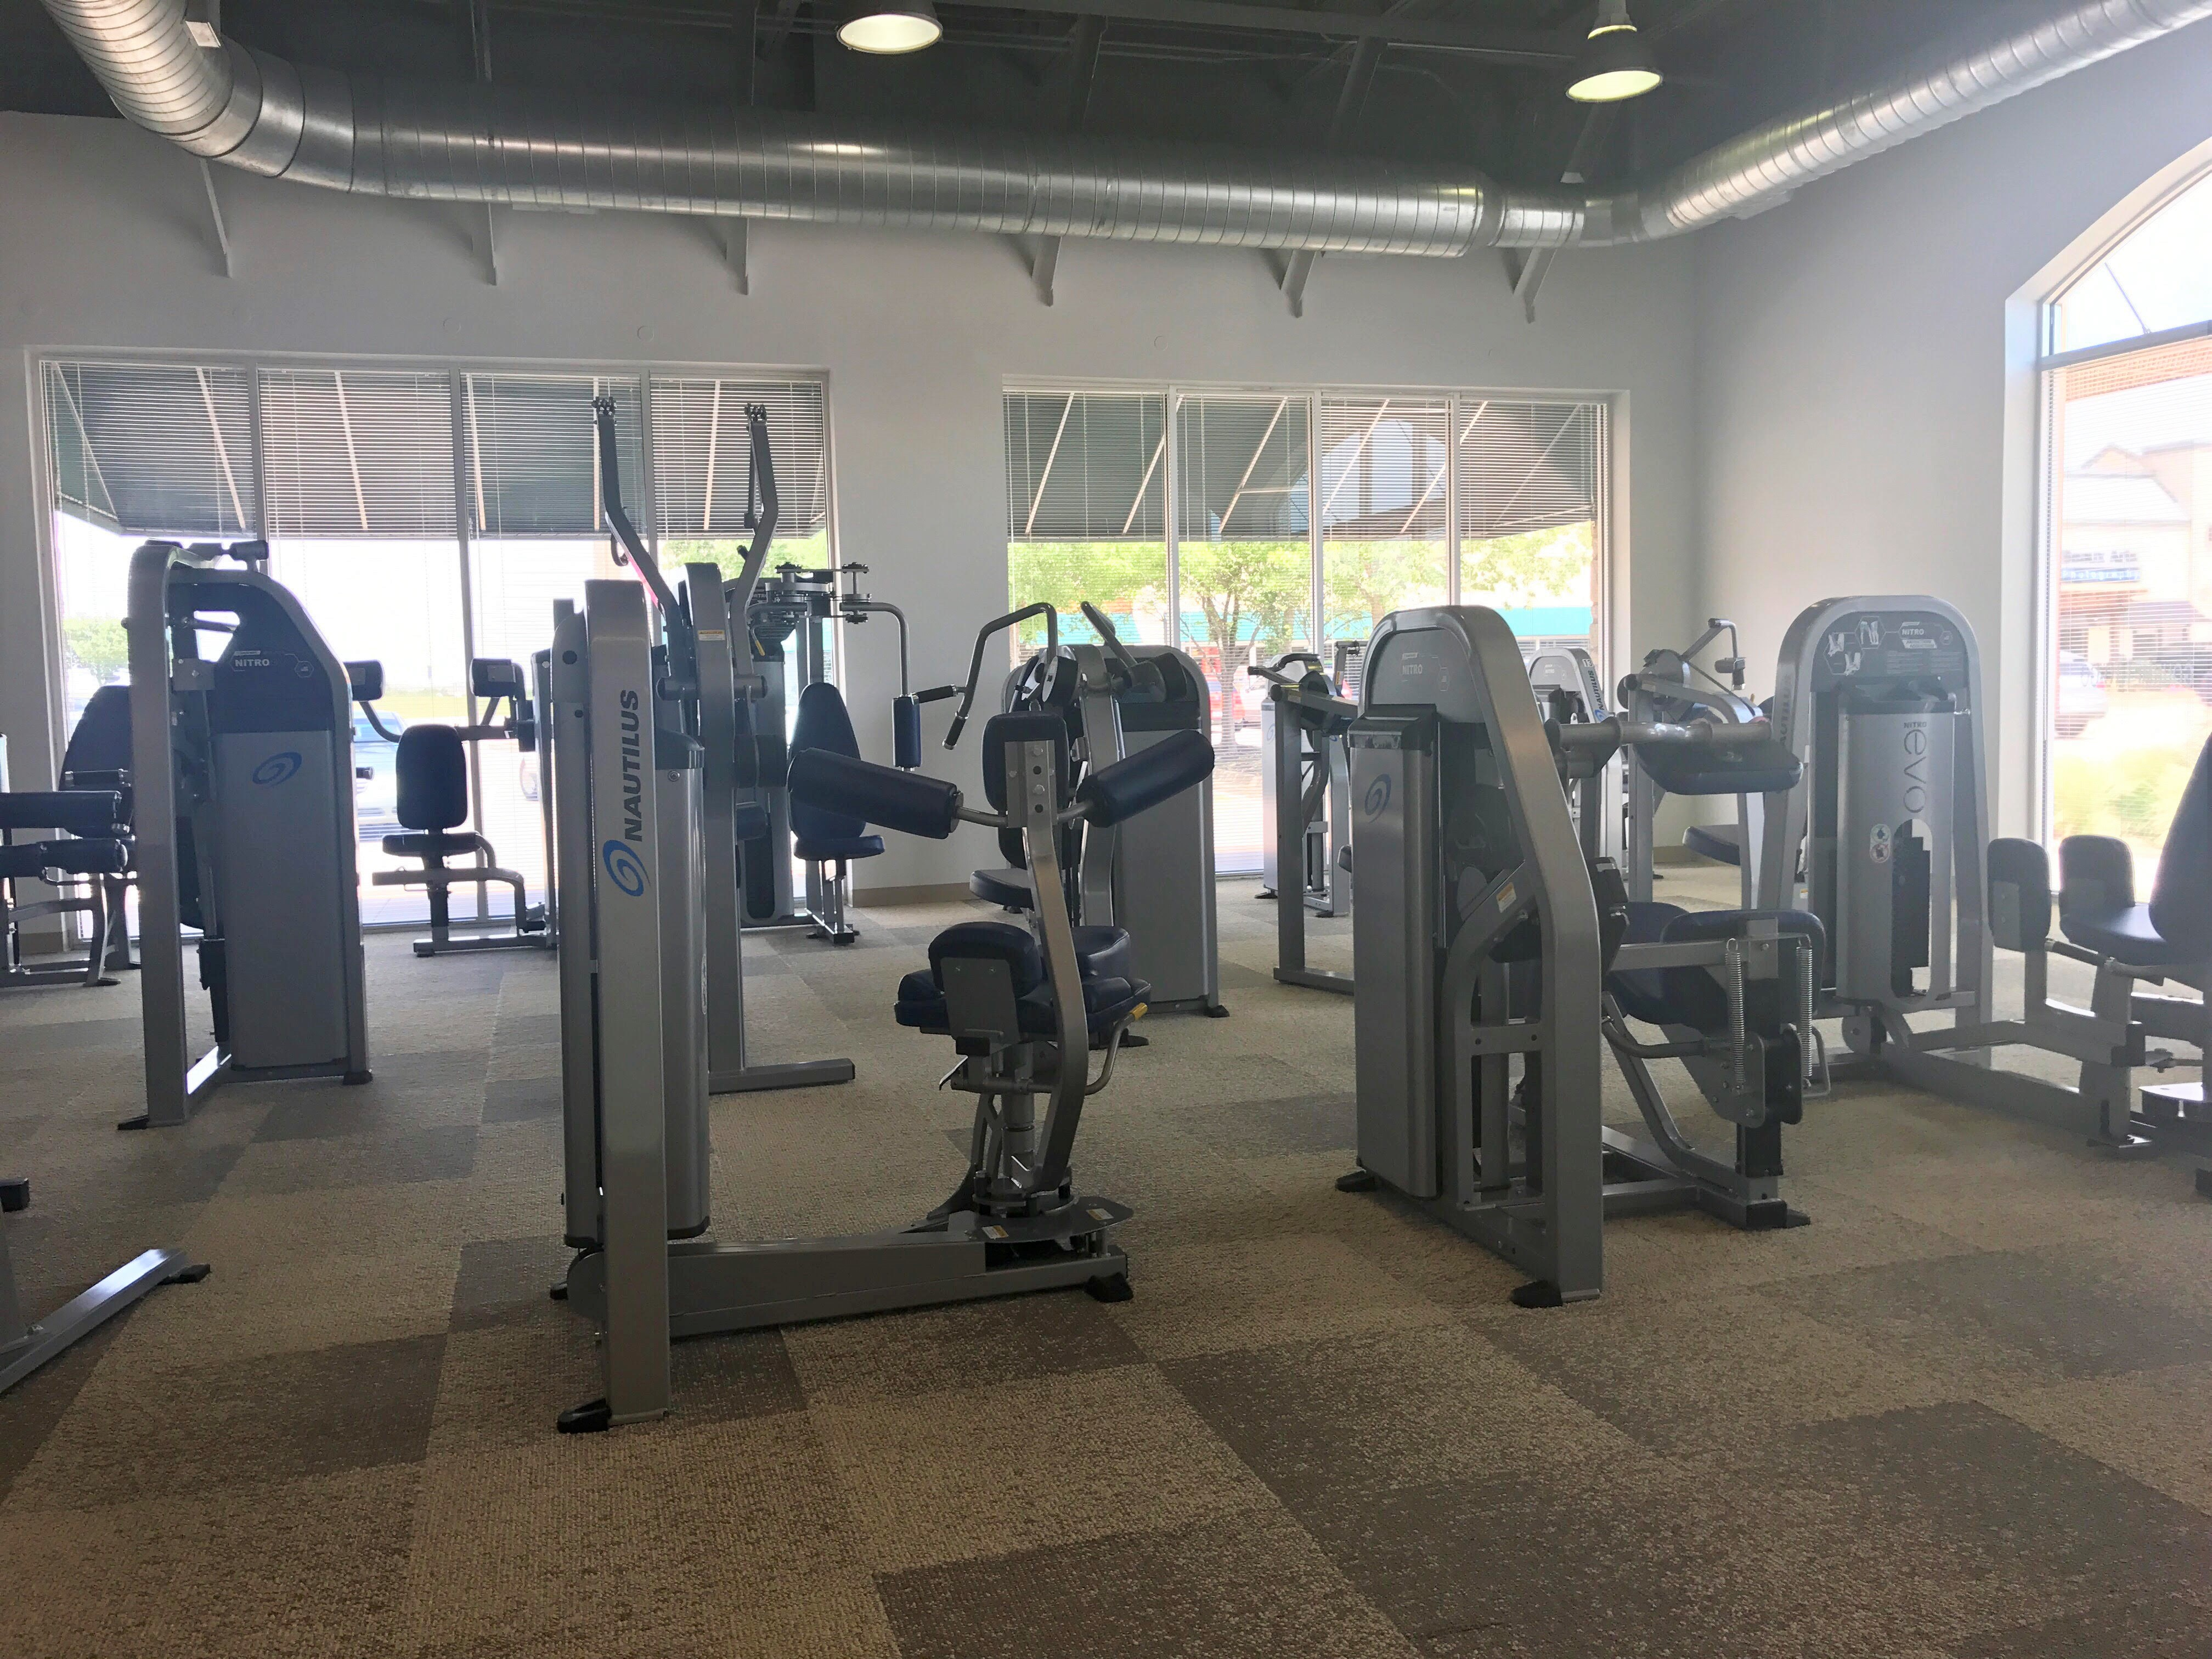 Workout area at Utopia Food & Fitness